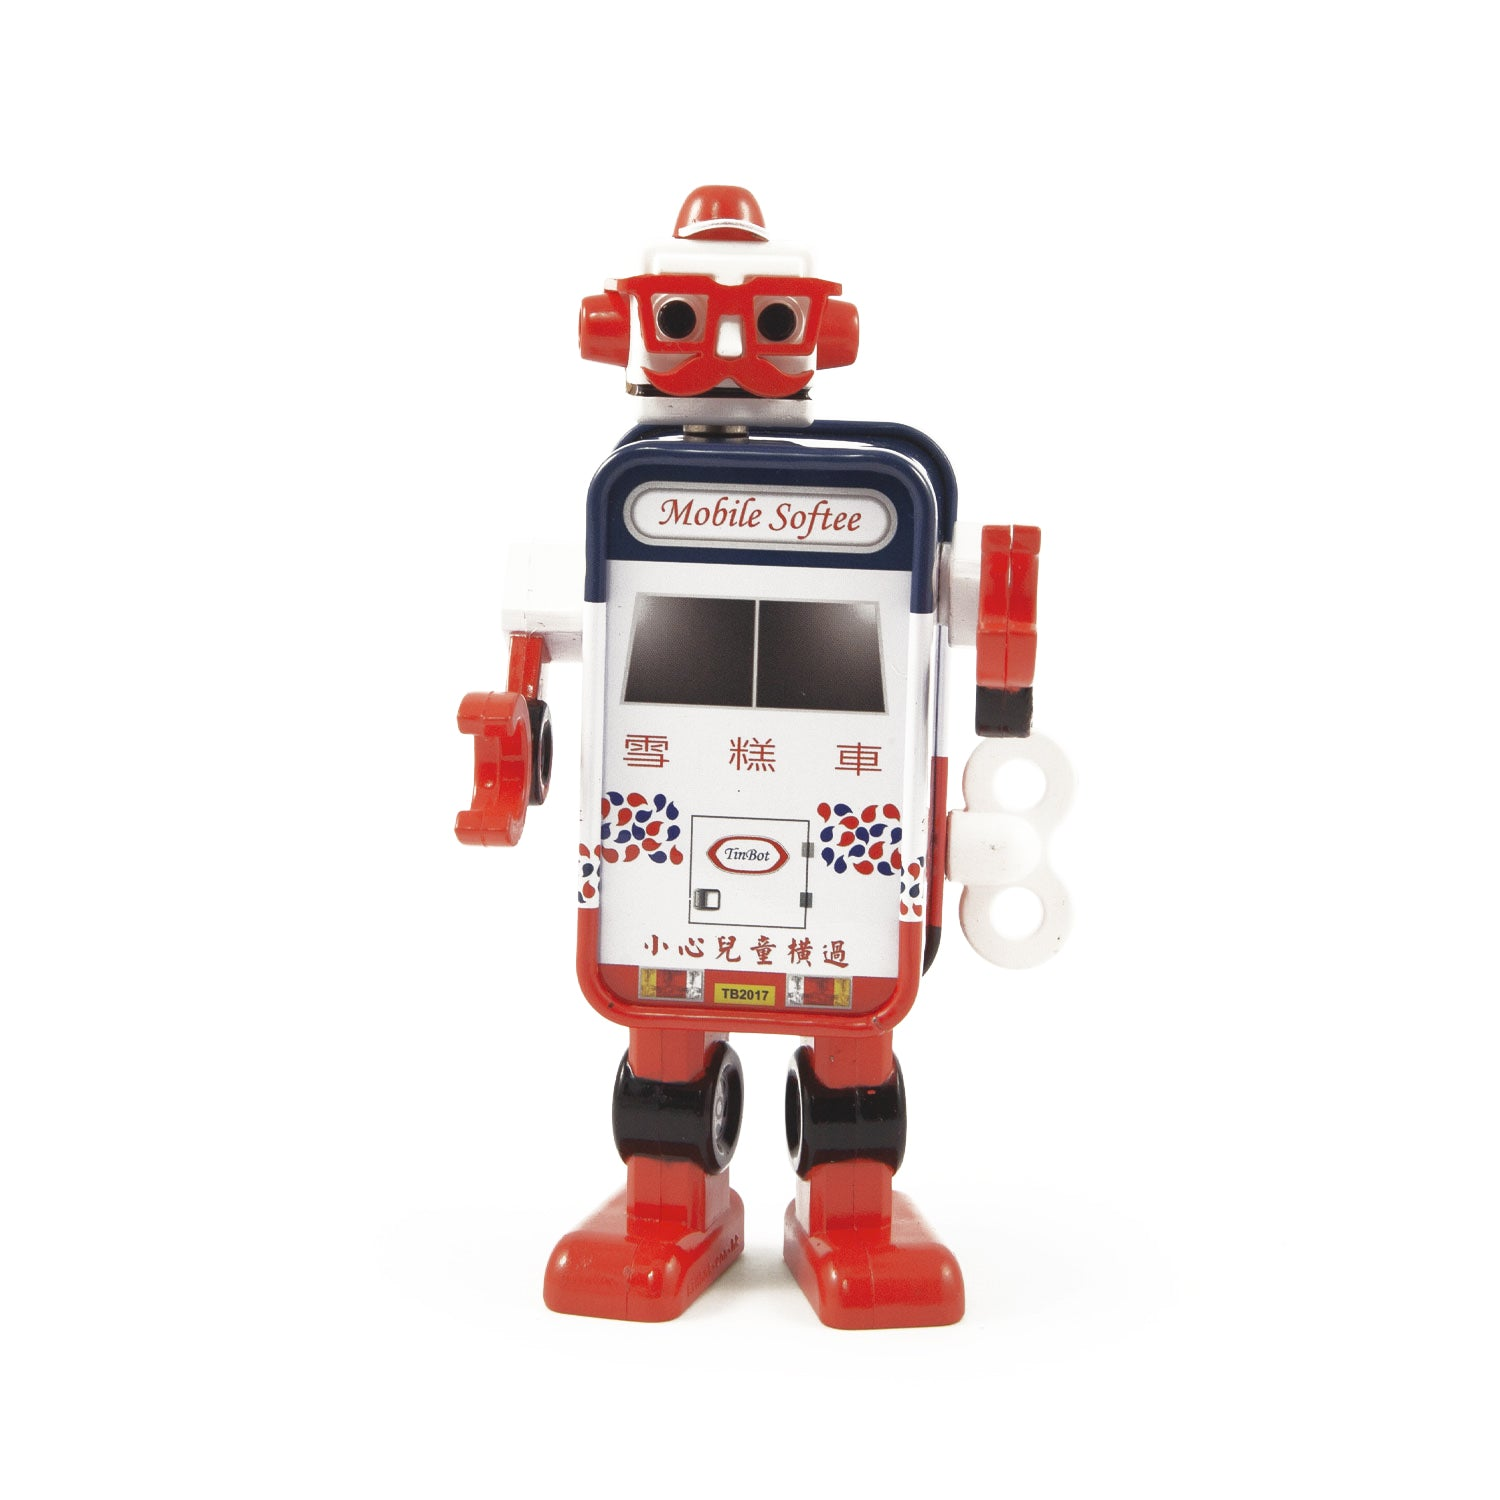 'Softee' Collectible Robot